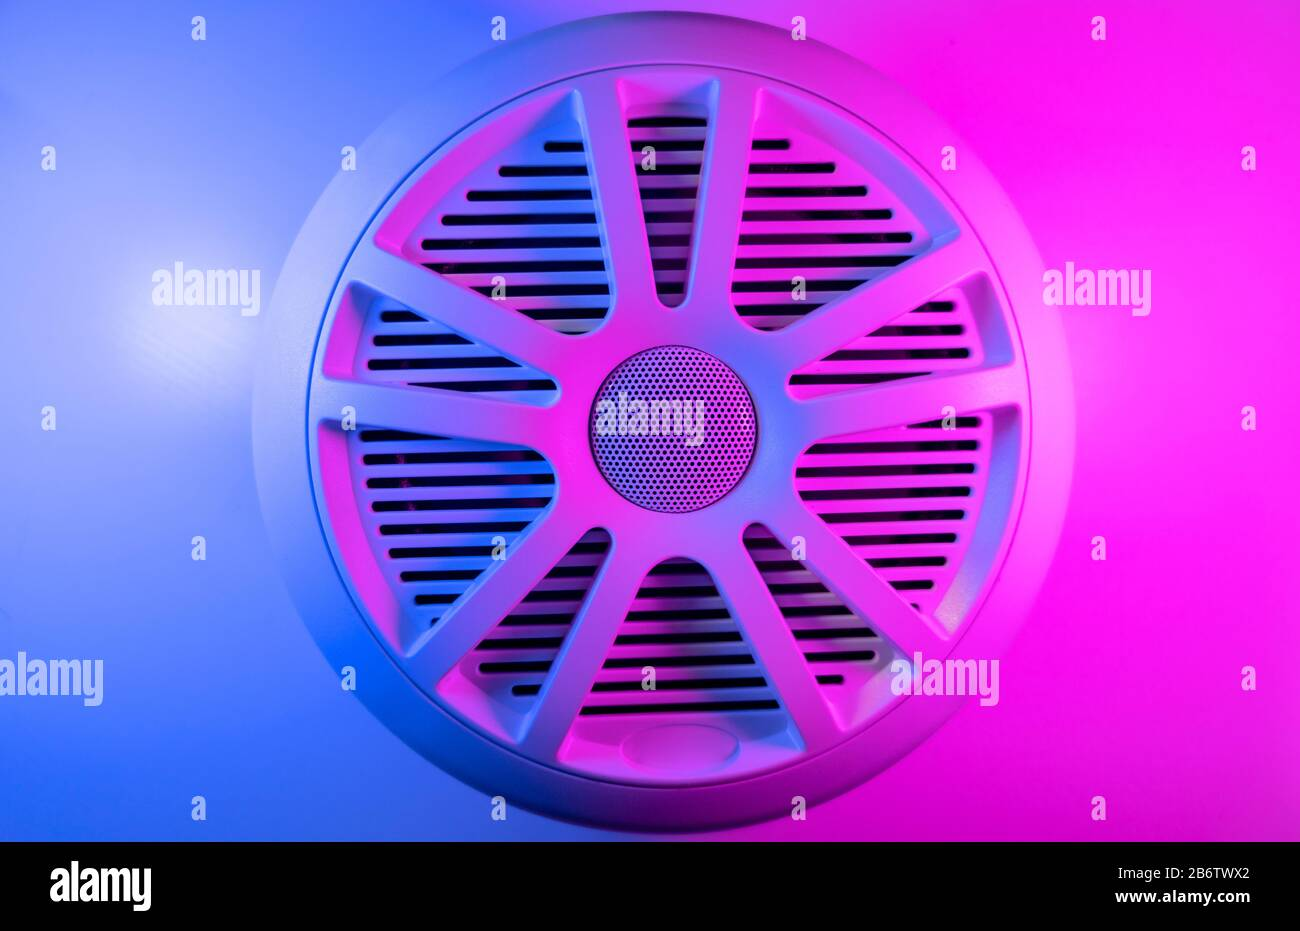 Colorful Lights Of Car Stereo And Car Speakers Background Car Music Audio Speaker In Blue And Pink Tones Modern Car Audio System Close Up Stock Photo Alamy